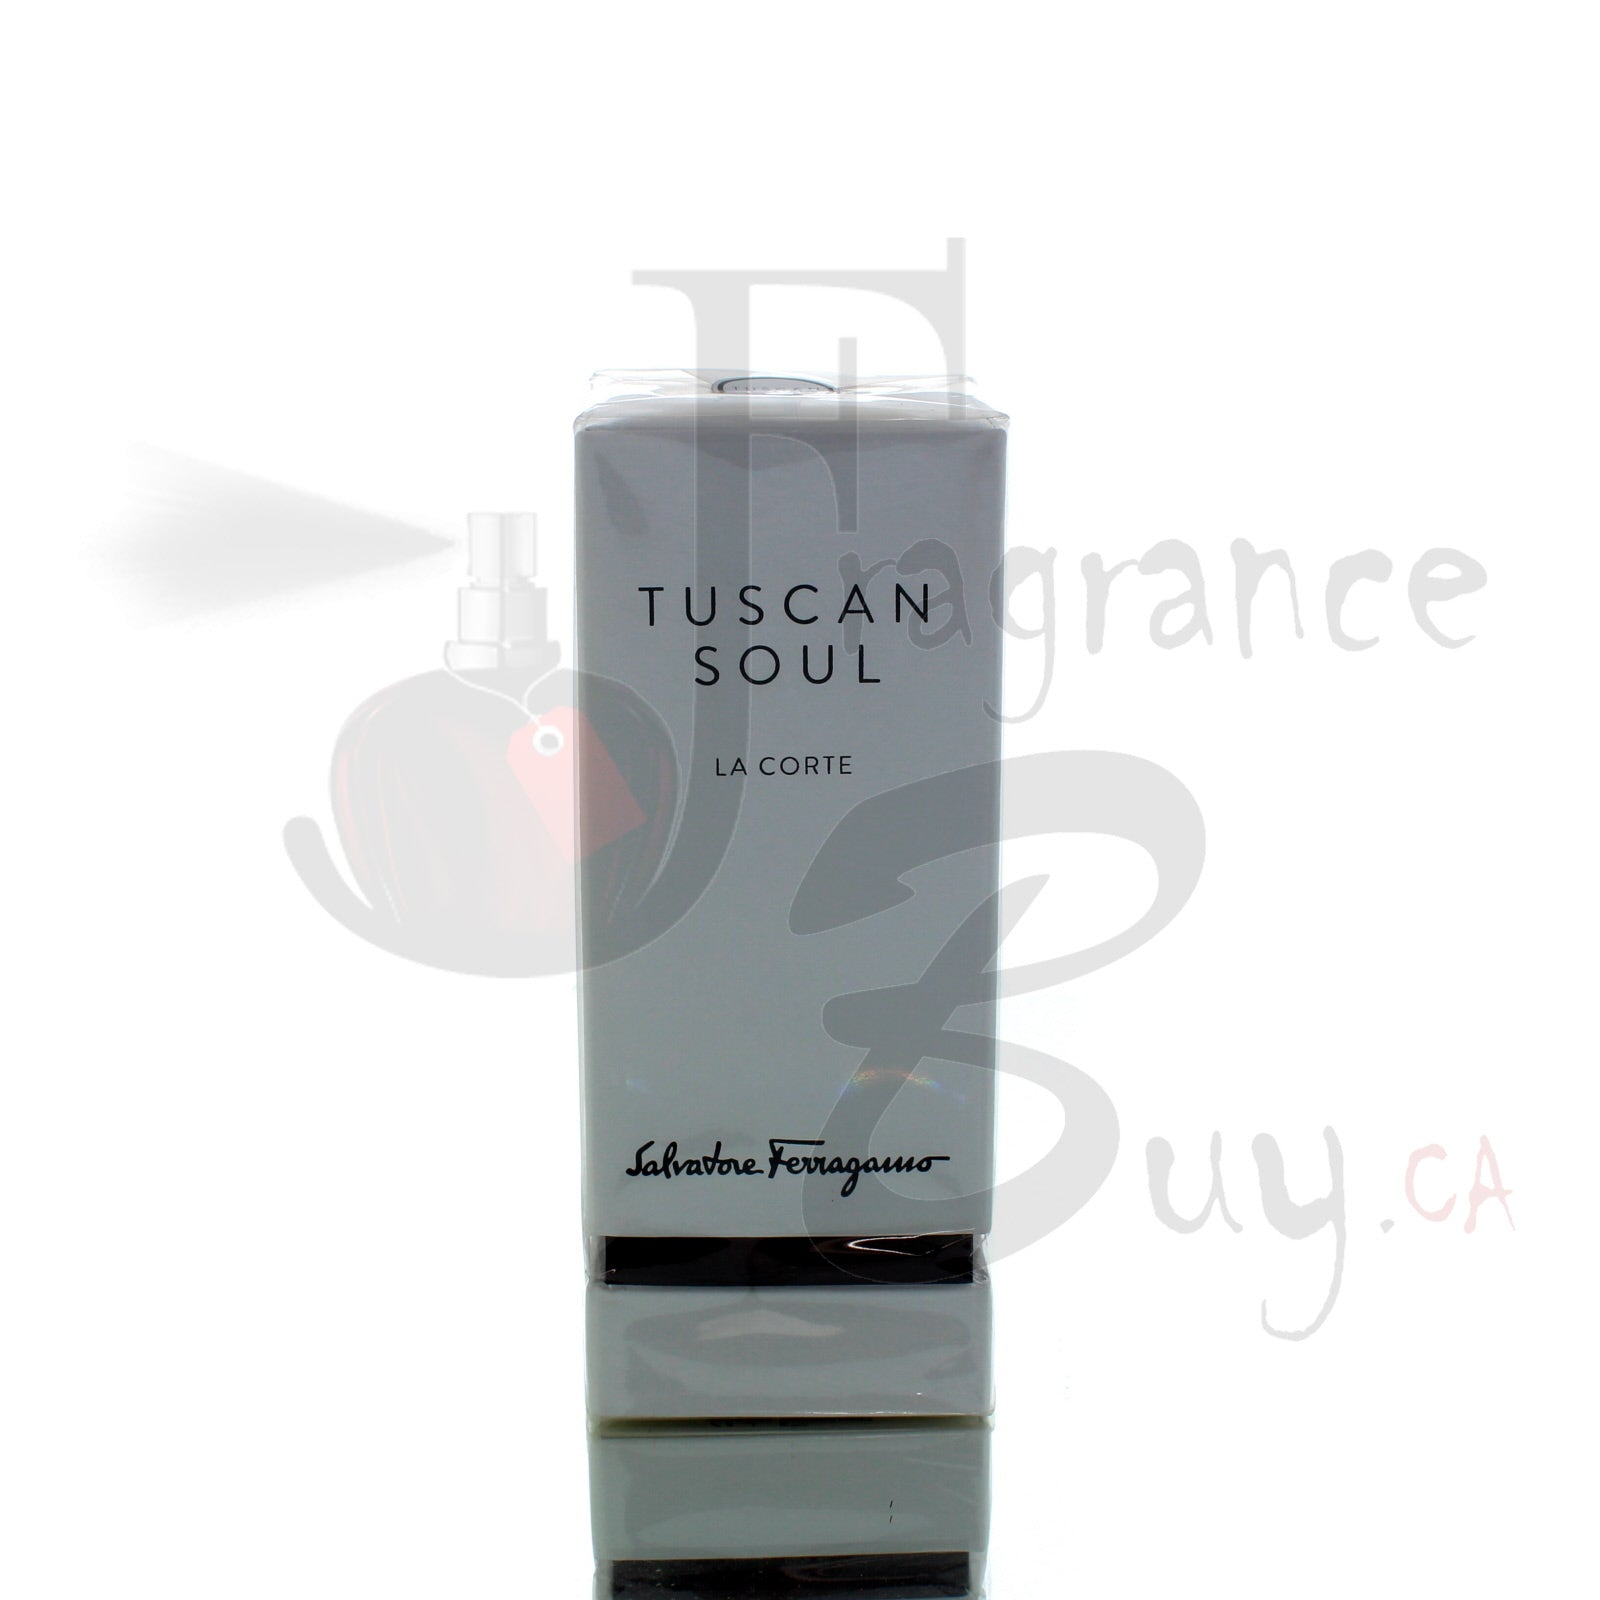 Salvatore Ferragamo Tuscan Scent La Corte For Man/Woman